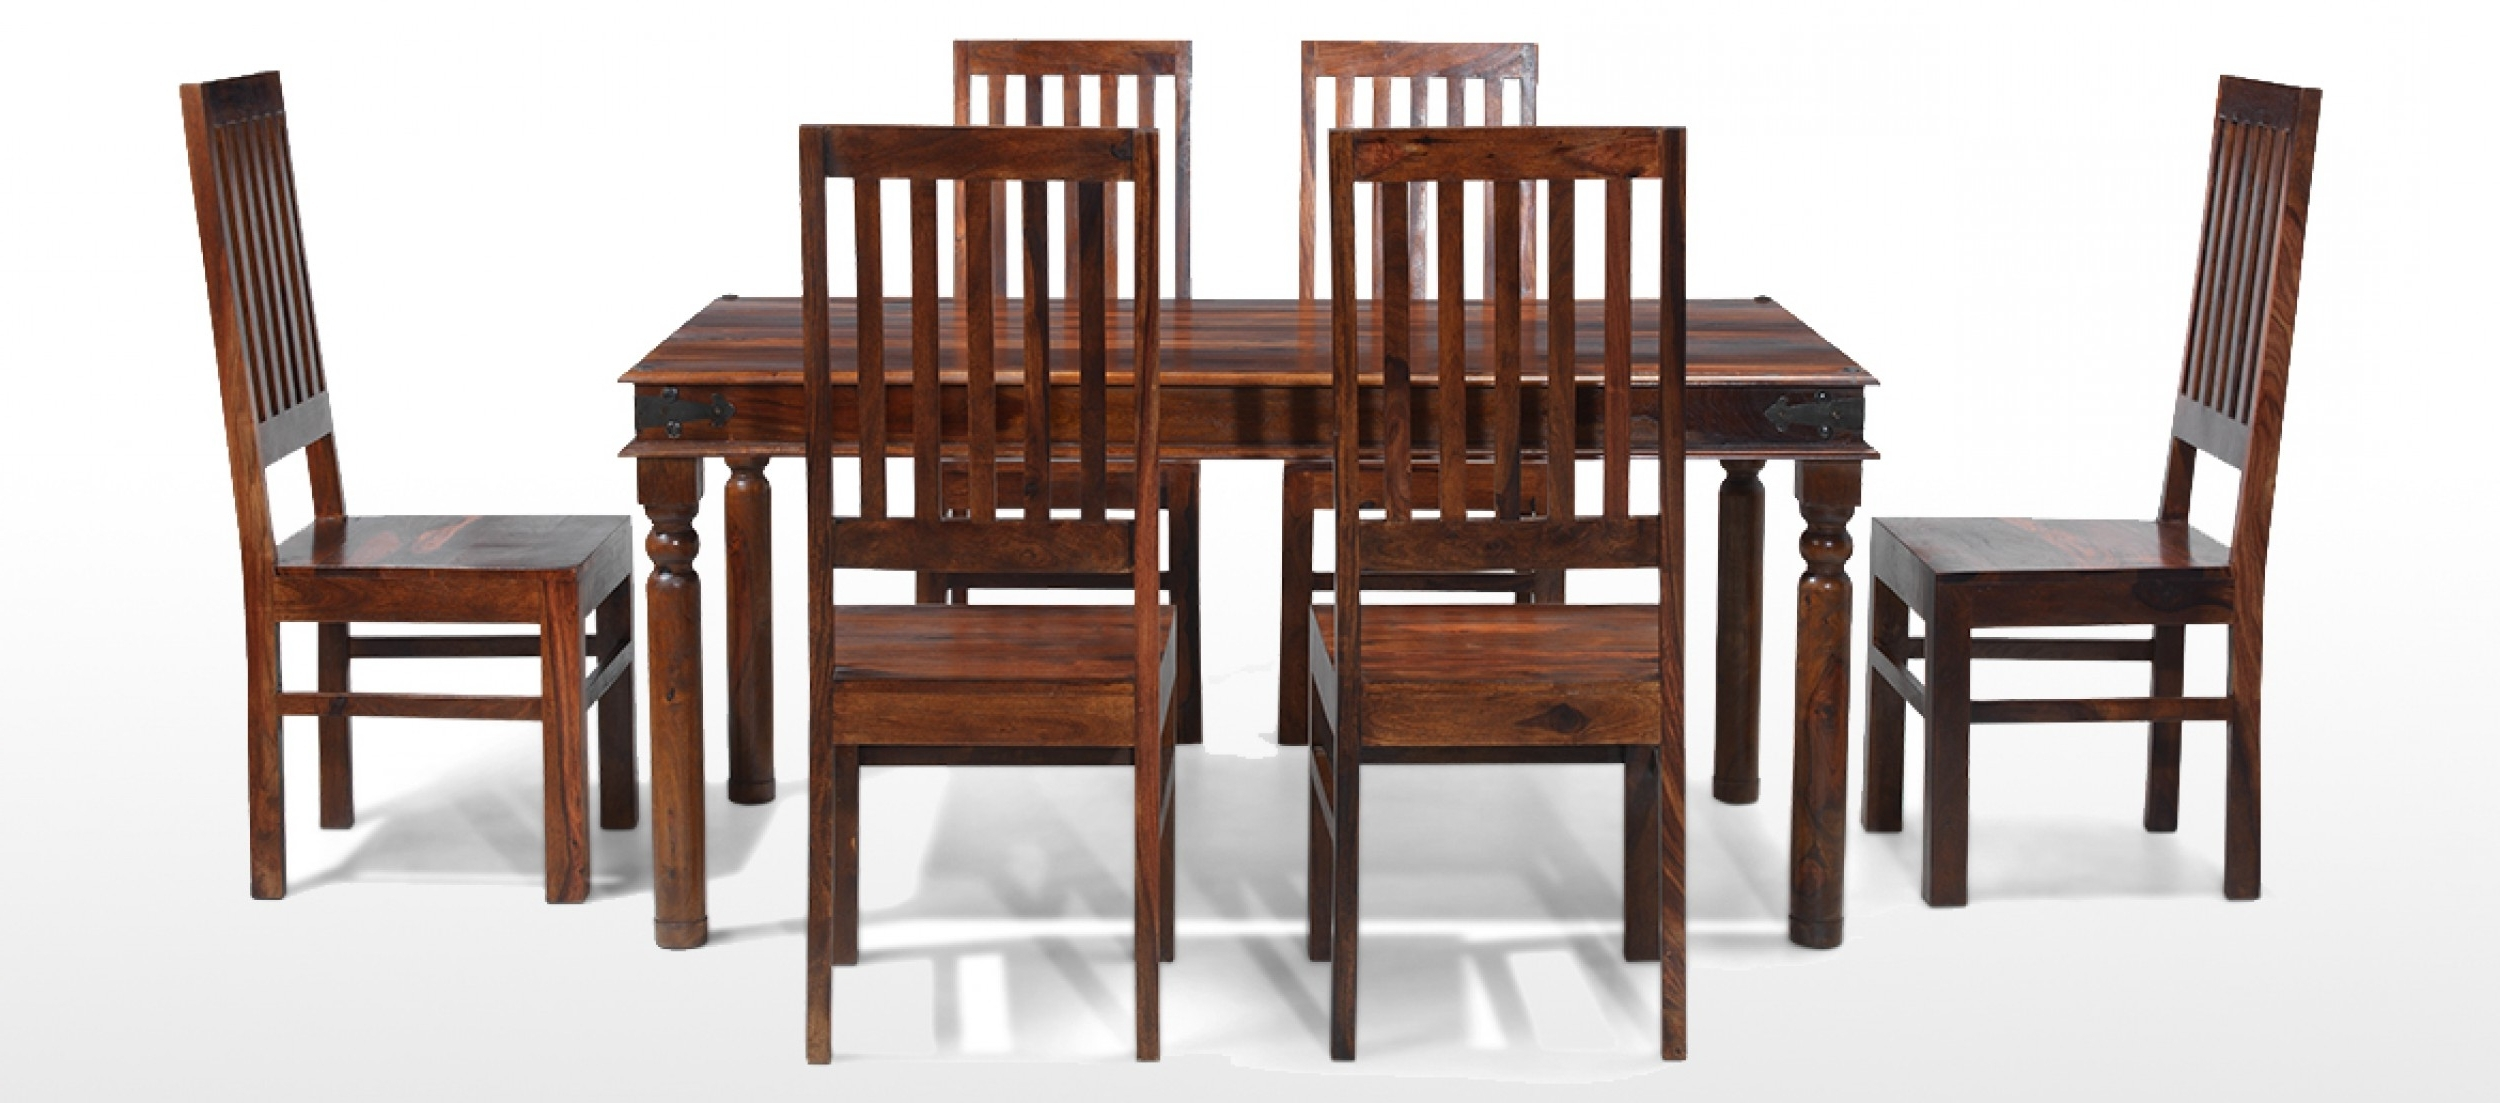 Quercus Living For Dark Wood Dining Tables And Chairs (View 14 of 25)